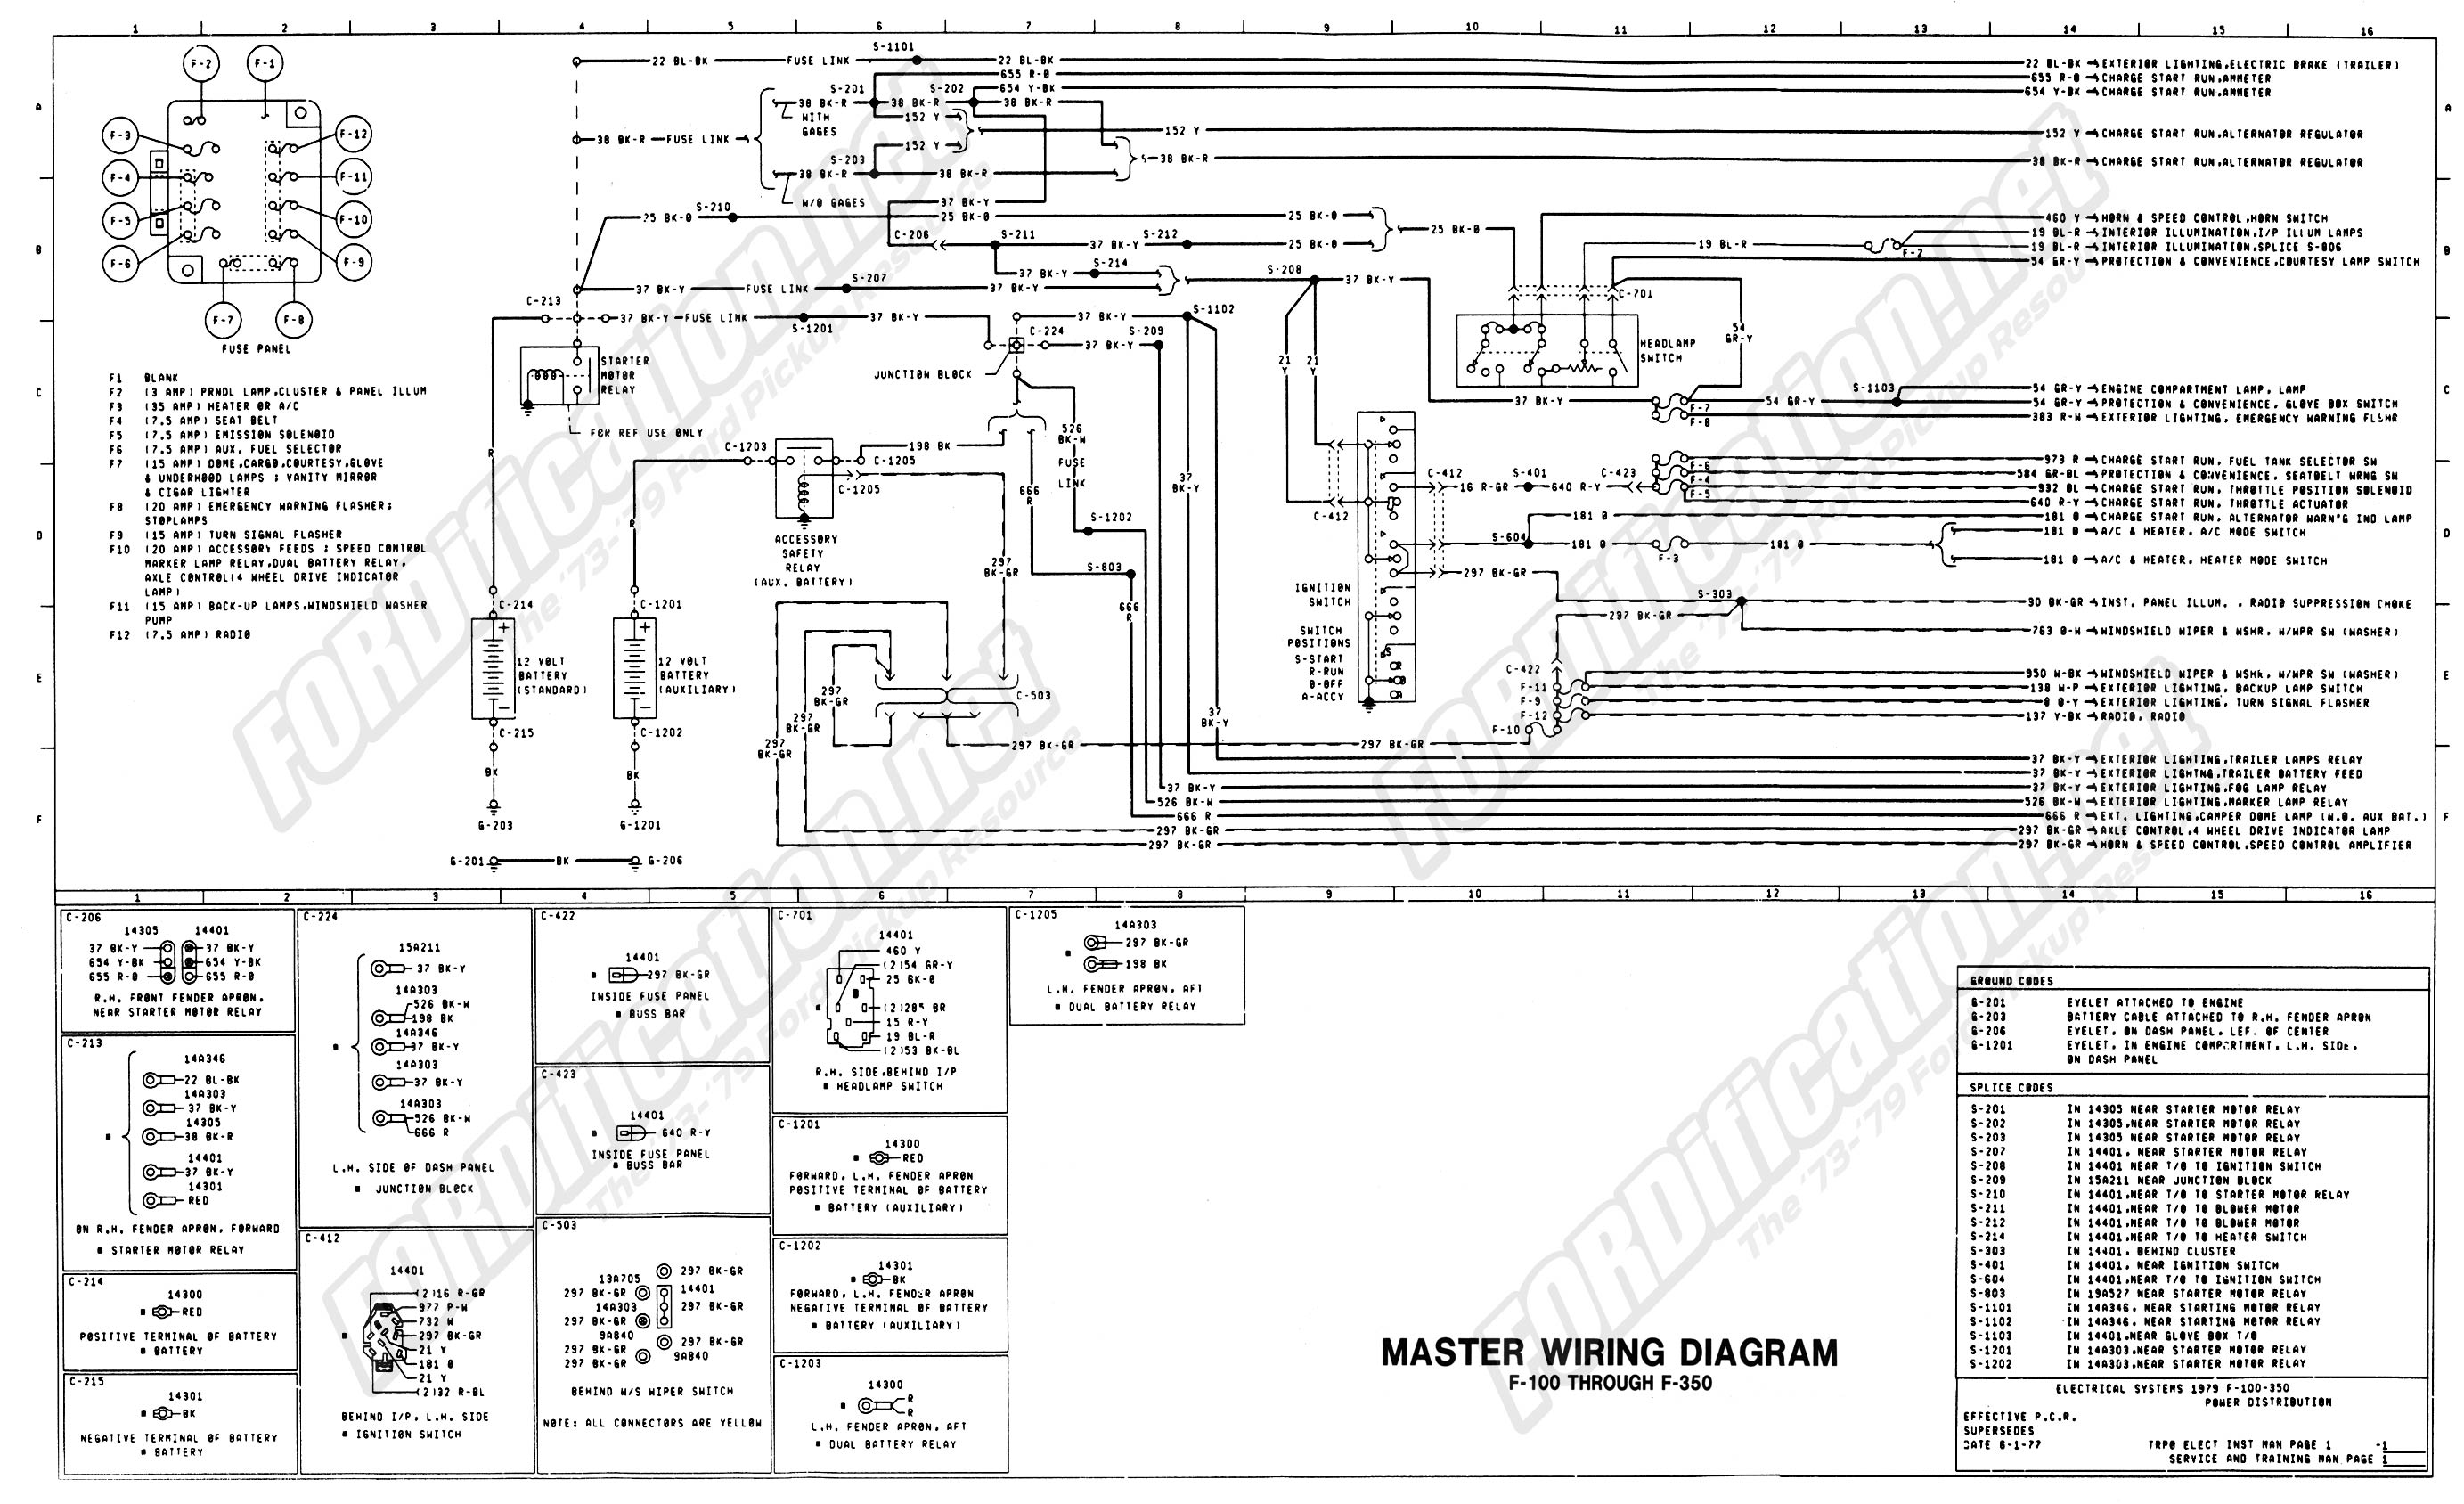 79'f150 solenoid wiring diagram ford truck enthusiasts forums 1978 ford truck wireing www fordification net tech im aster_1of9 jpg